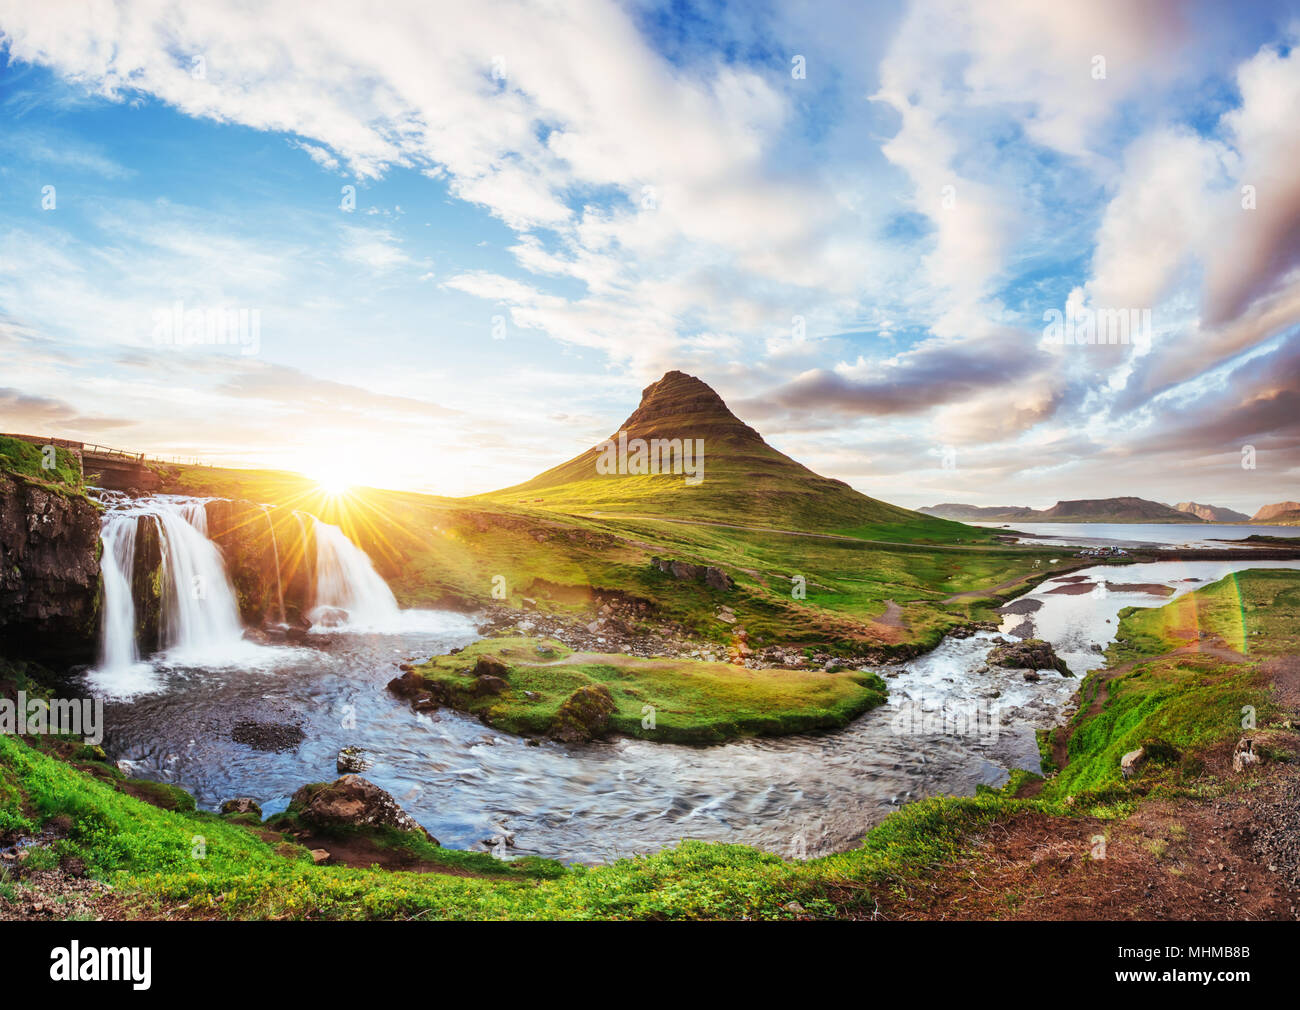 The picturesque sunset over landscapes and waterfalls. Kirkjufell mountain, Iceland - Stock Image